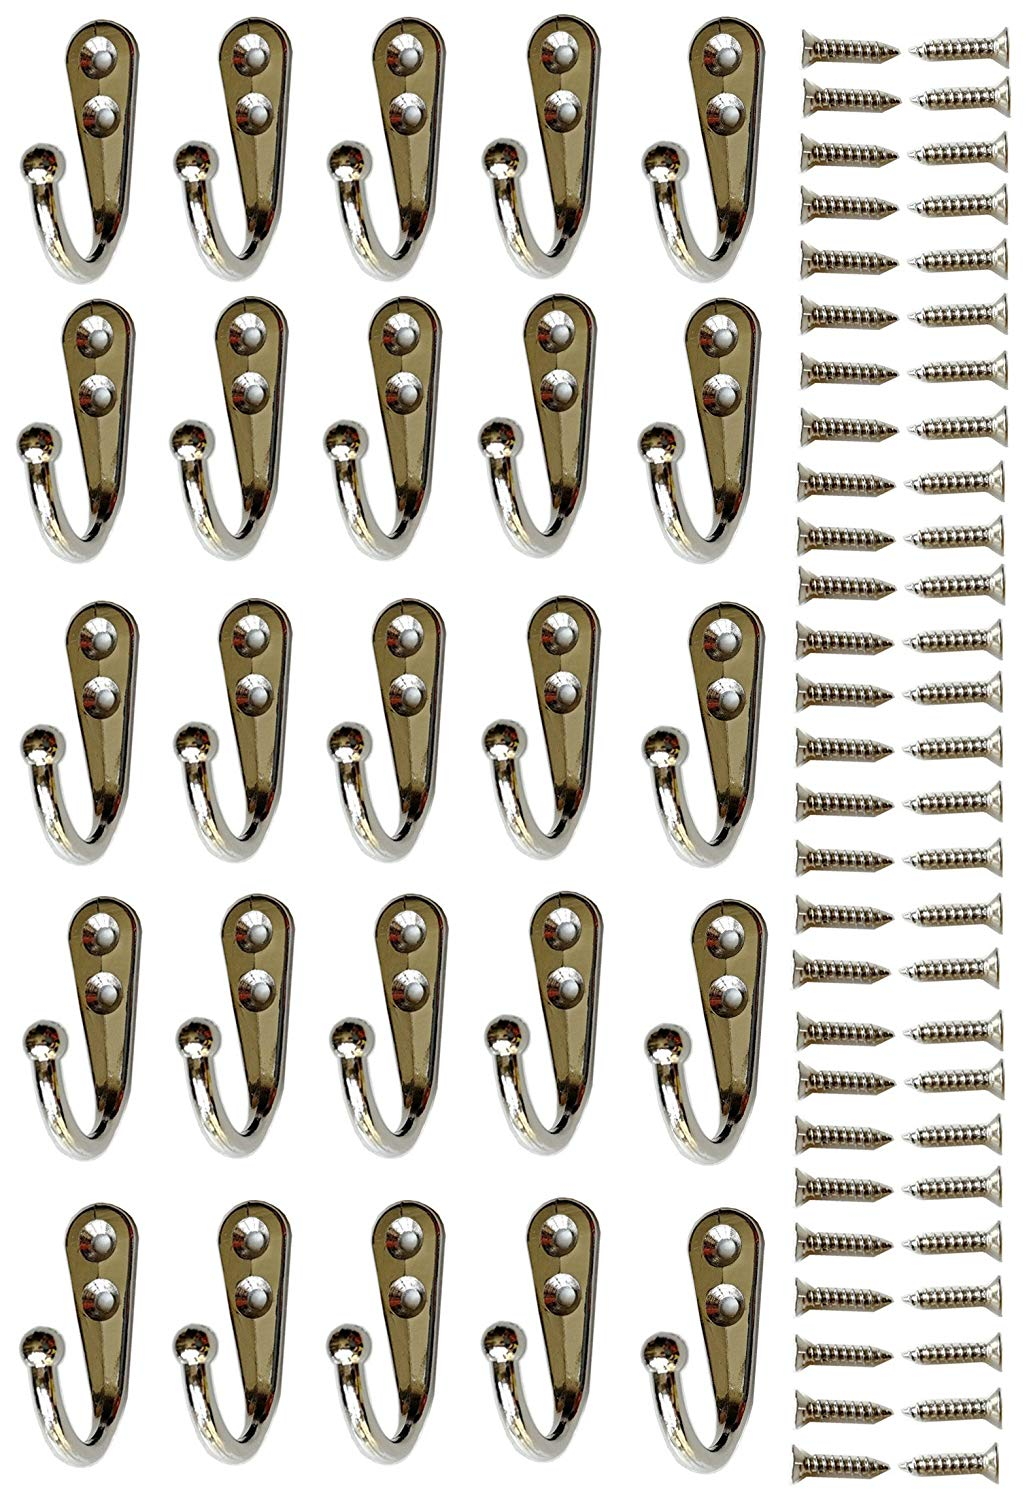 25 Pieces Wall Mounted Coat Hook Robe Hooks Cloth Hanger Coat Hanger Coat Hooks Rustic Hooks and 54 Pieces Screws for Bath Kitchen Garage Silver Single Coat Hanger